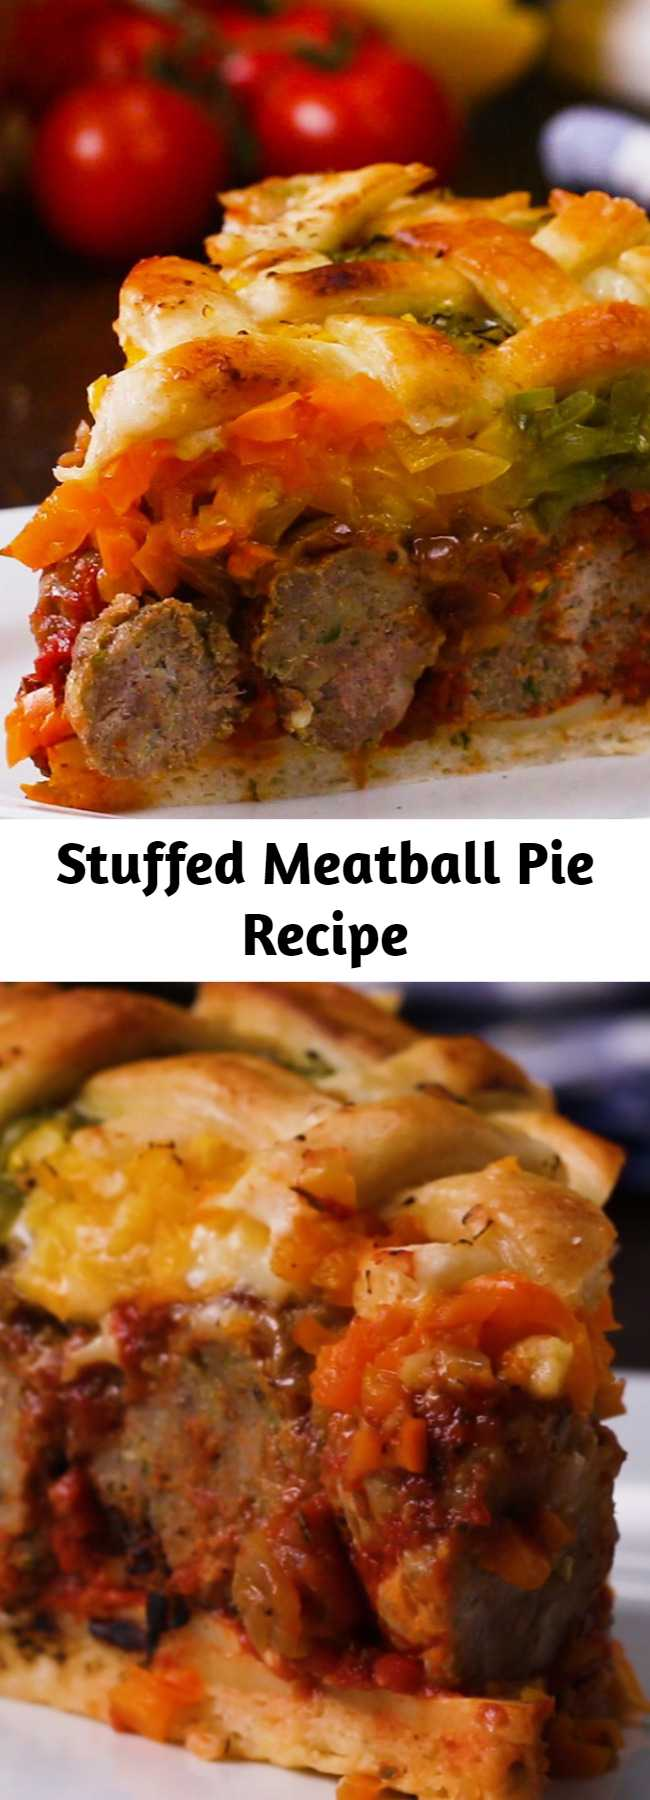 Stuffed Meatball Pie Recipe - This was really tasty and easy to make. Every meatball-lover will adore this Stuffed Meatball Pie.